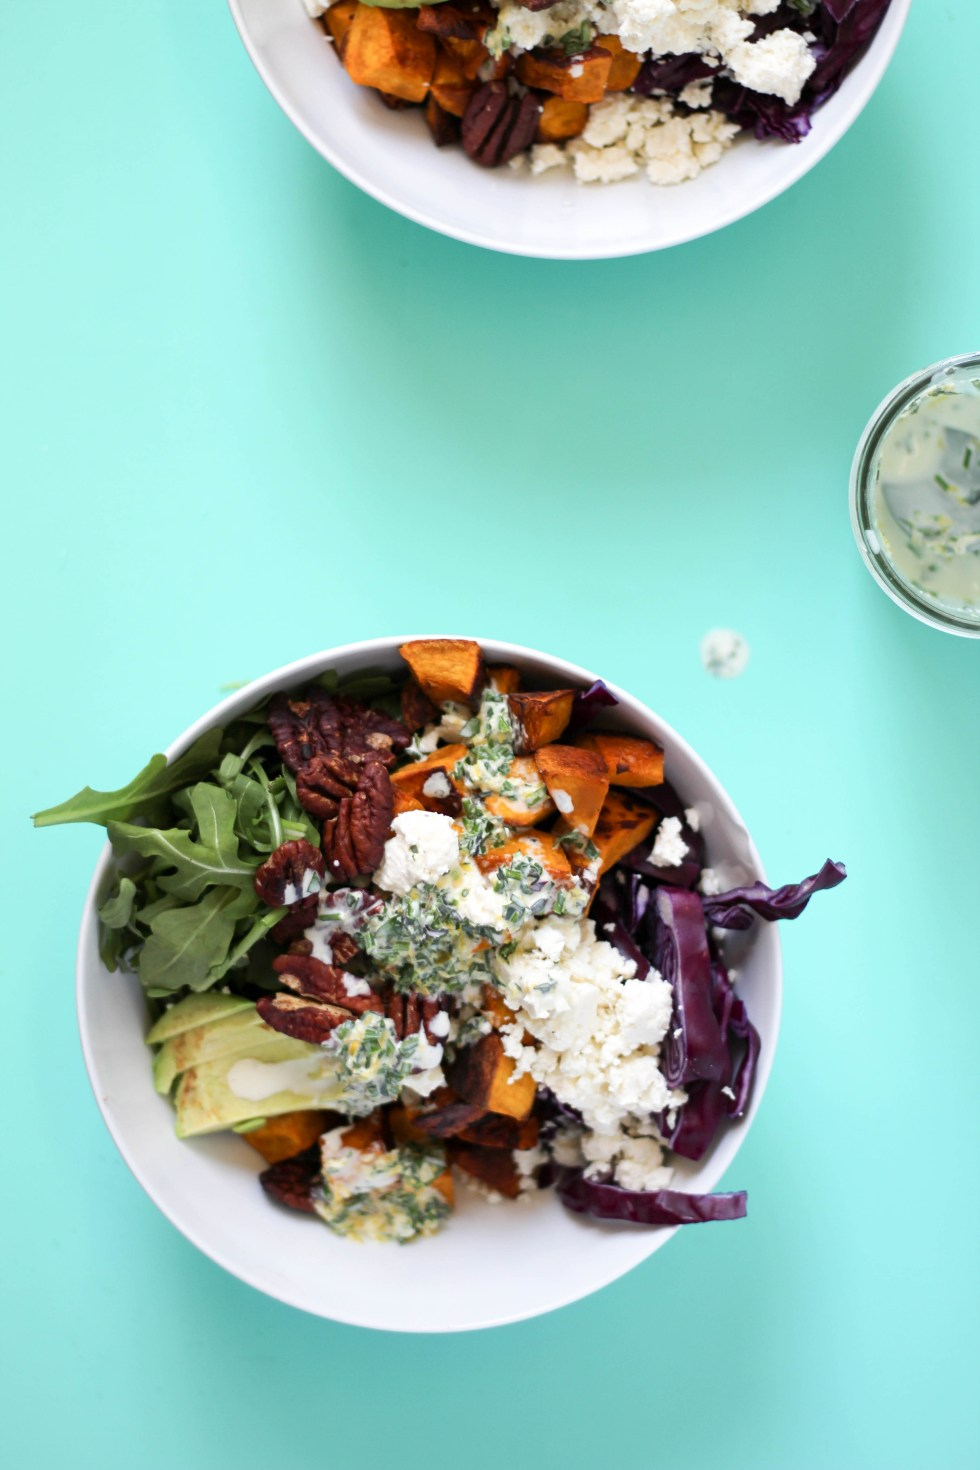 A winter salad with roasted squash, bulgur wheat + a buttermilk dressing | POP KITCHEN